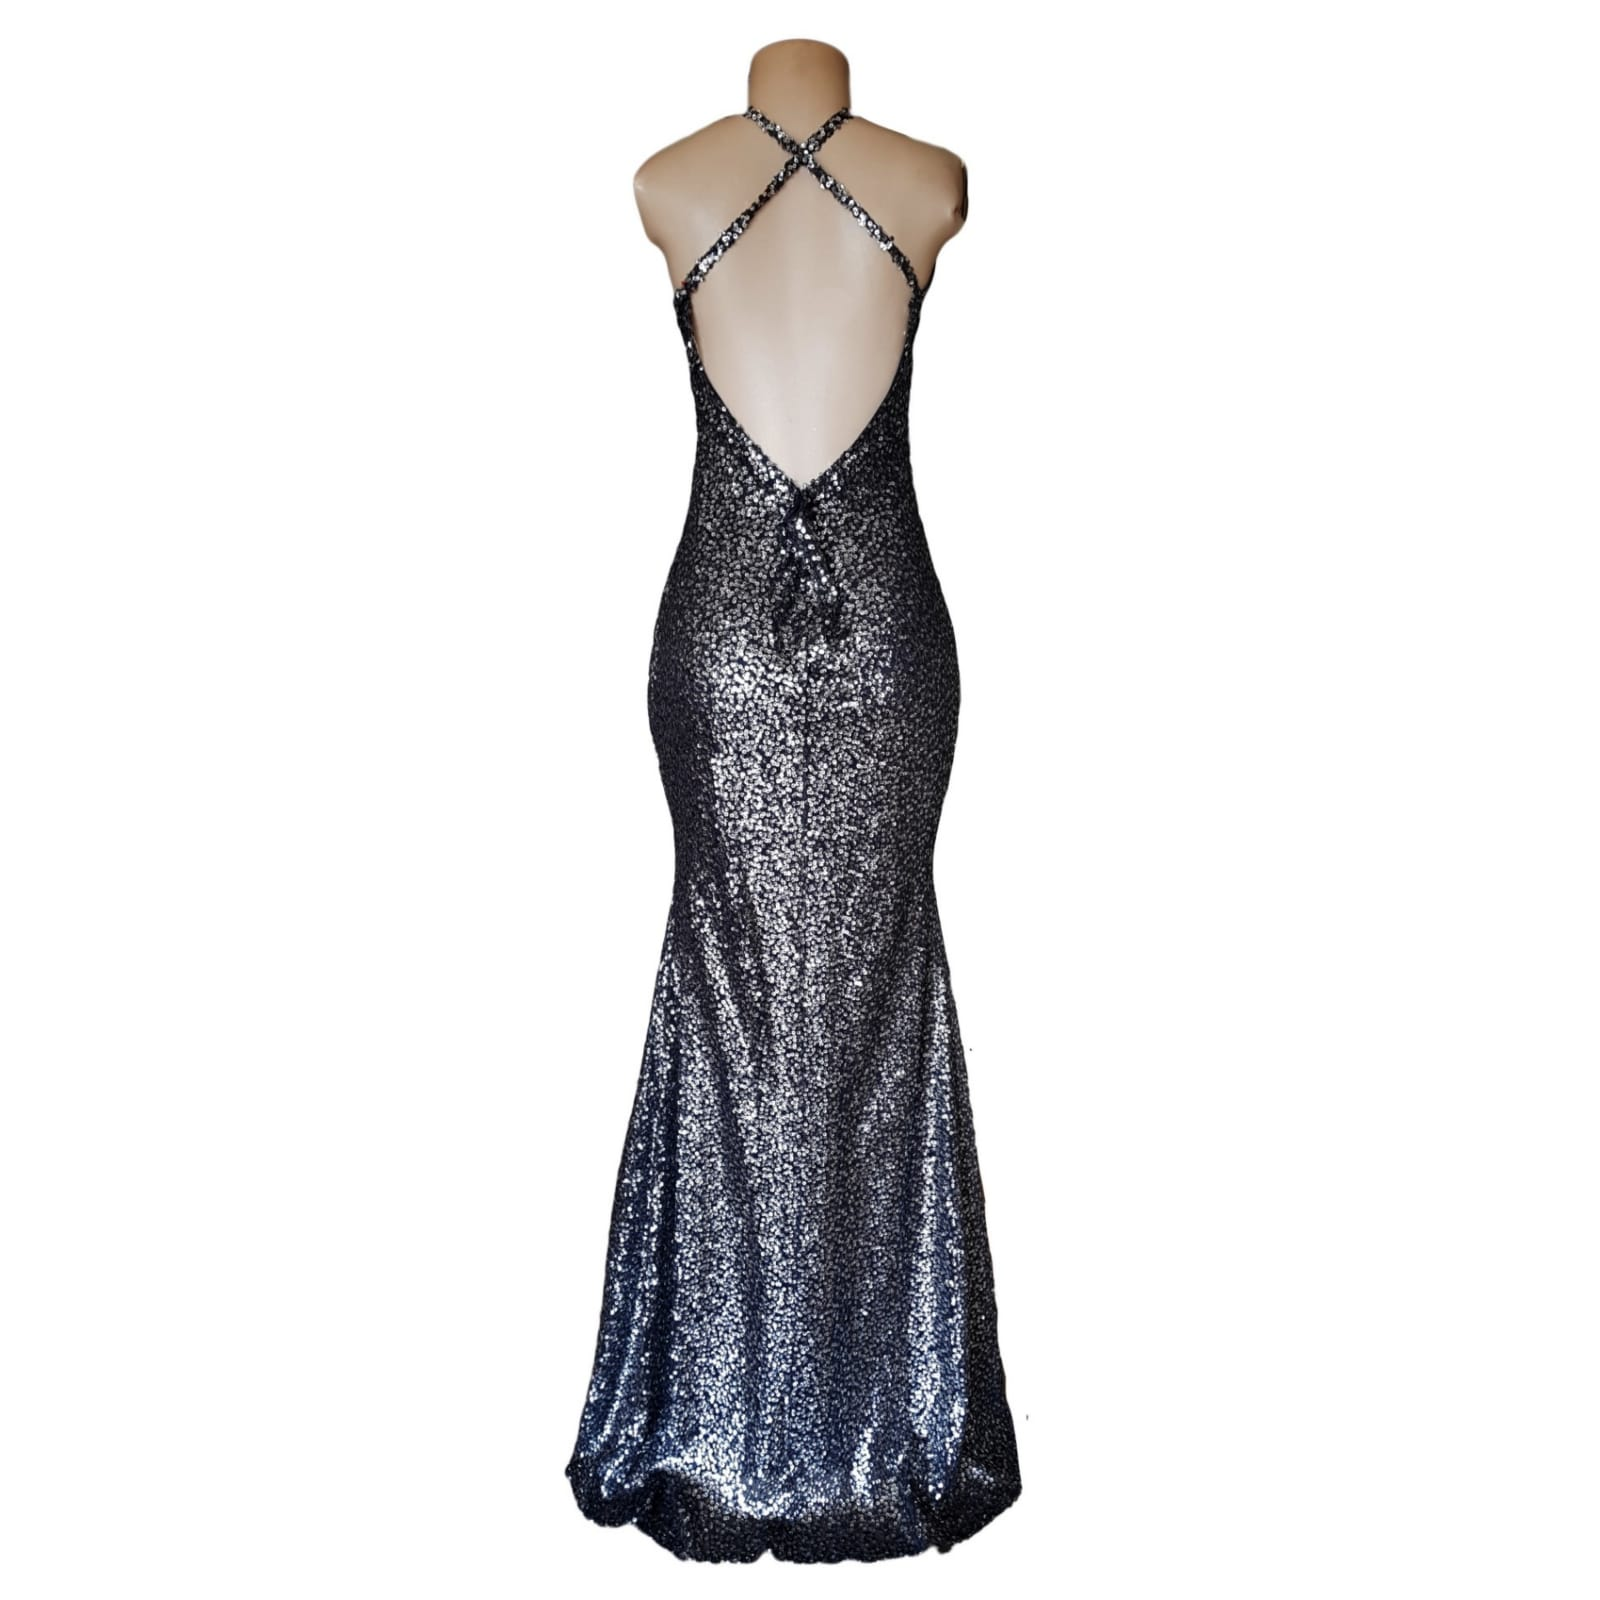 Charcoal fully sequins long evening dress for end year party 2 charcoal fully sequins long evening dress for end year party, with a low v open back and crossed shoulder straps.